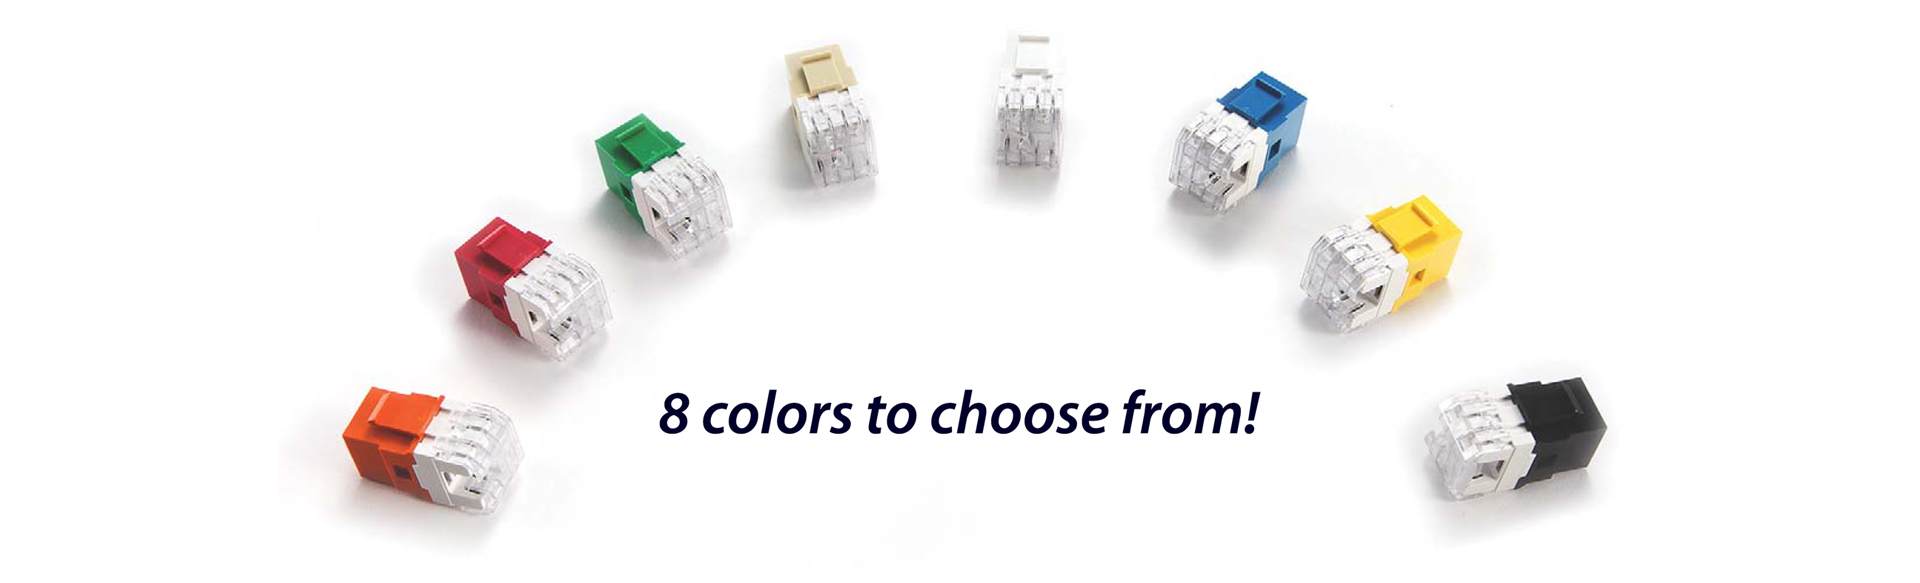 An array of variously-colored RJ45 jacks